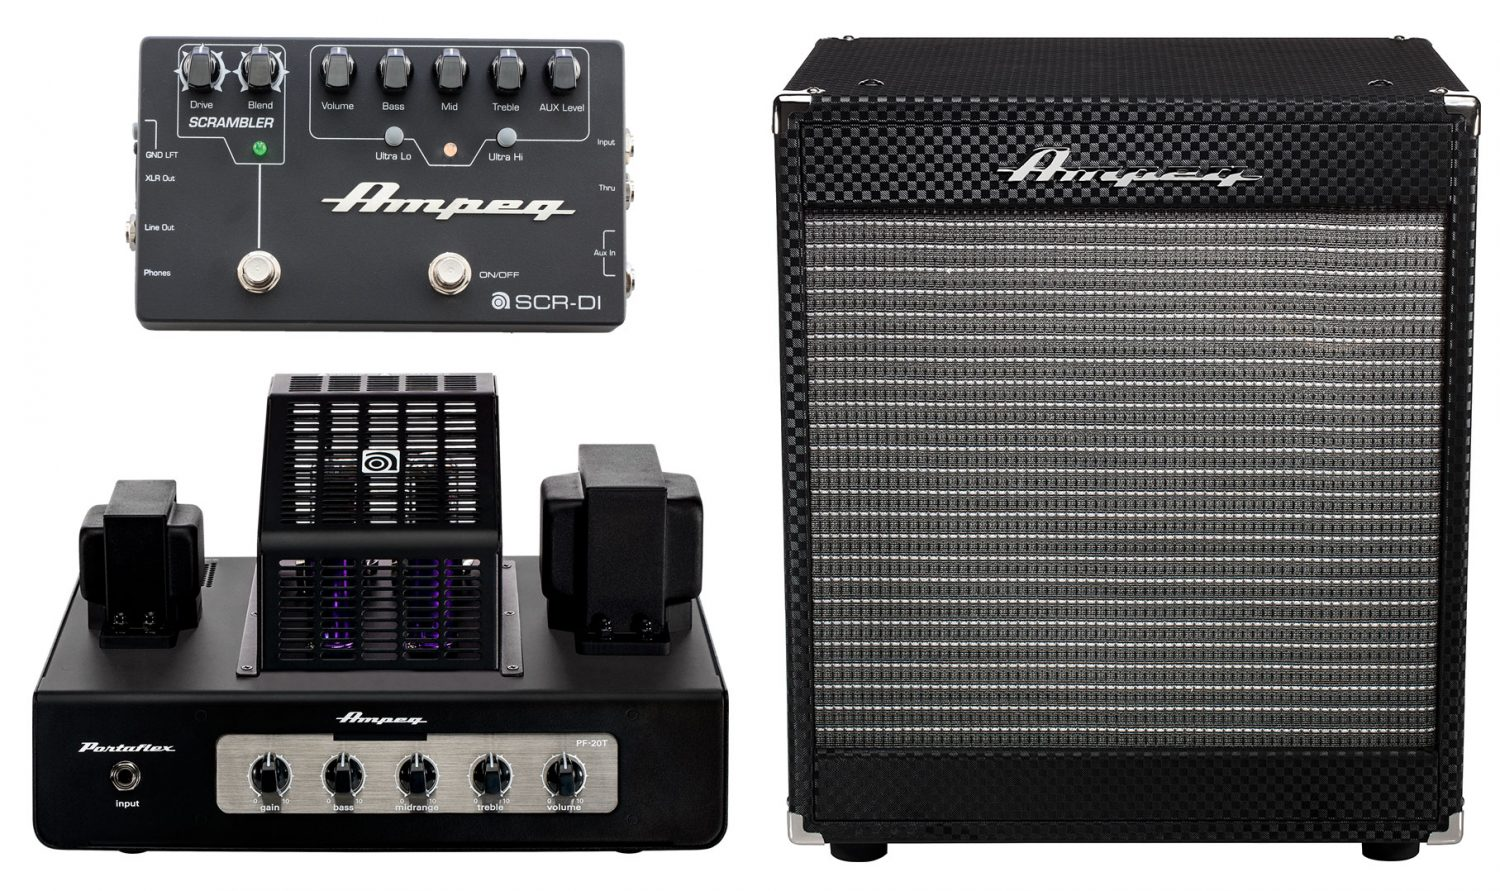 Ampeg Contest Prizes